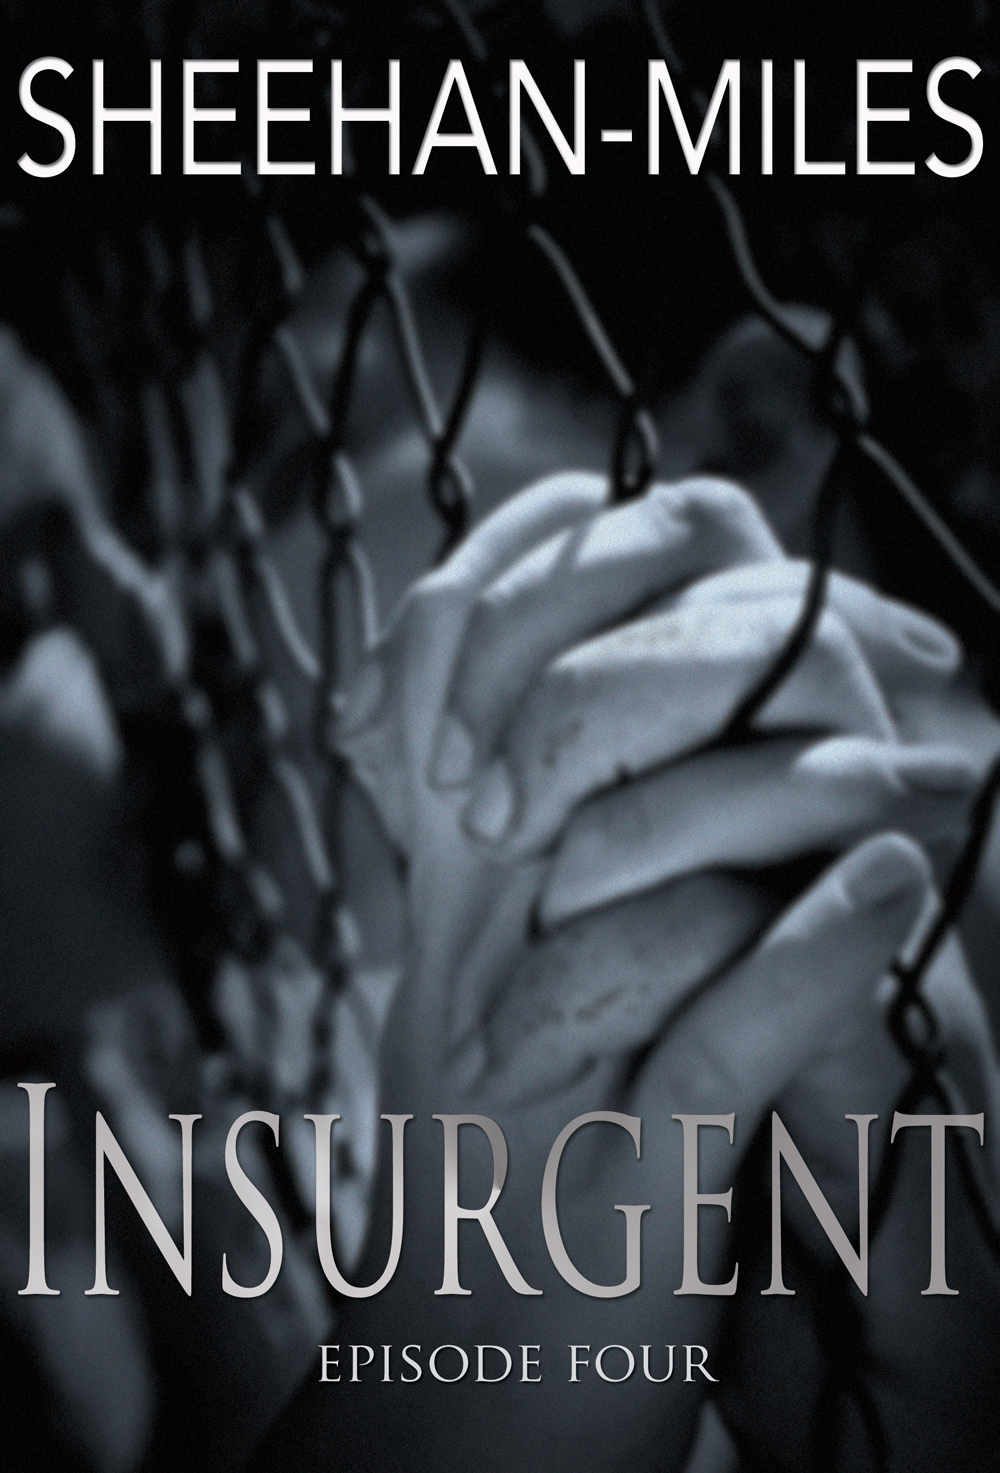 insurgent a brief story Insurgent is the second novel in veronica roth's debut trilogy divergent, preceded by divergent and followed by allegiant it was published in may 2012 by katherine tegen books, and continues the story of protagonist tris prior and her quest to reform a dystopian chicago society ruled by the.